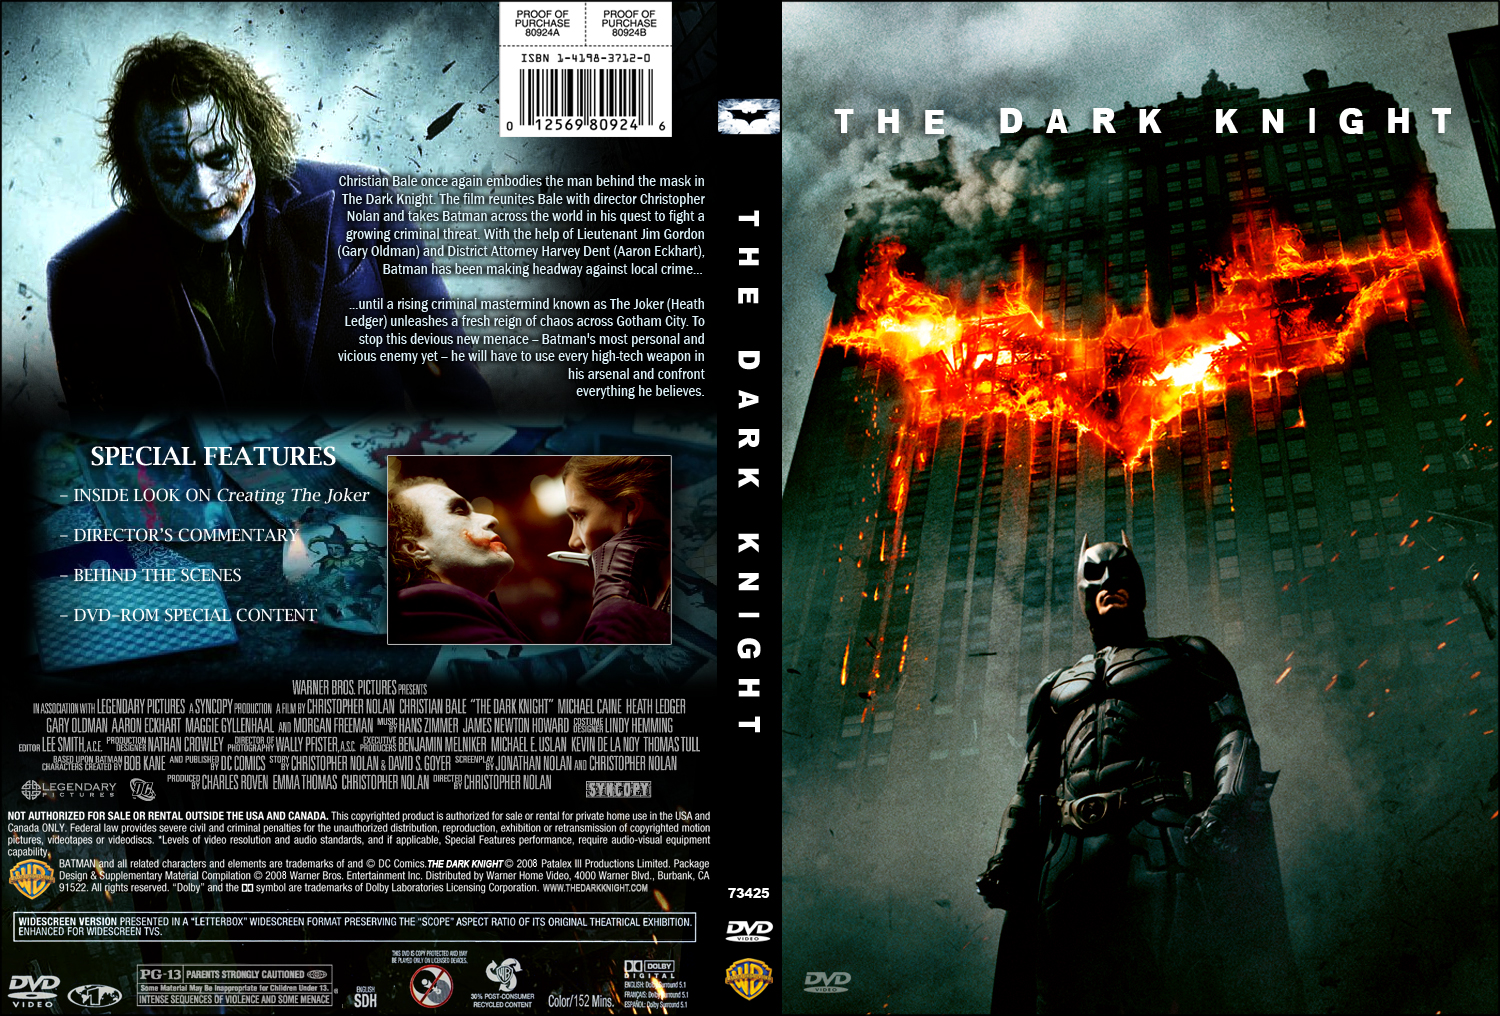 The Dark Knight DVD Cover - Movie Covers